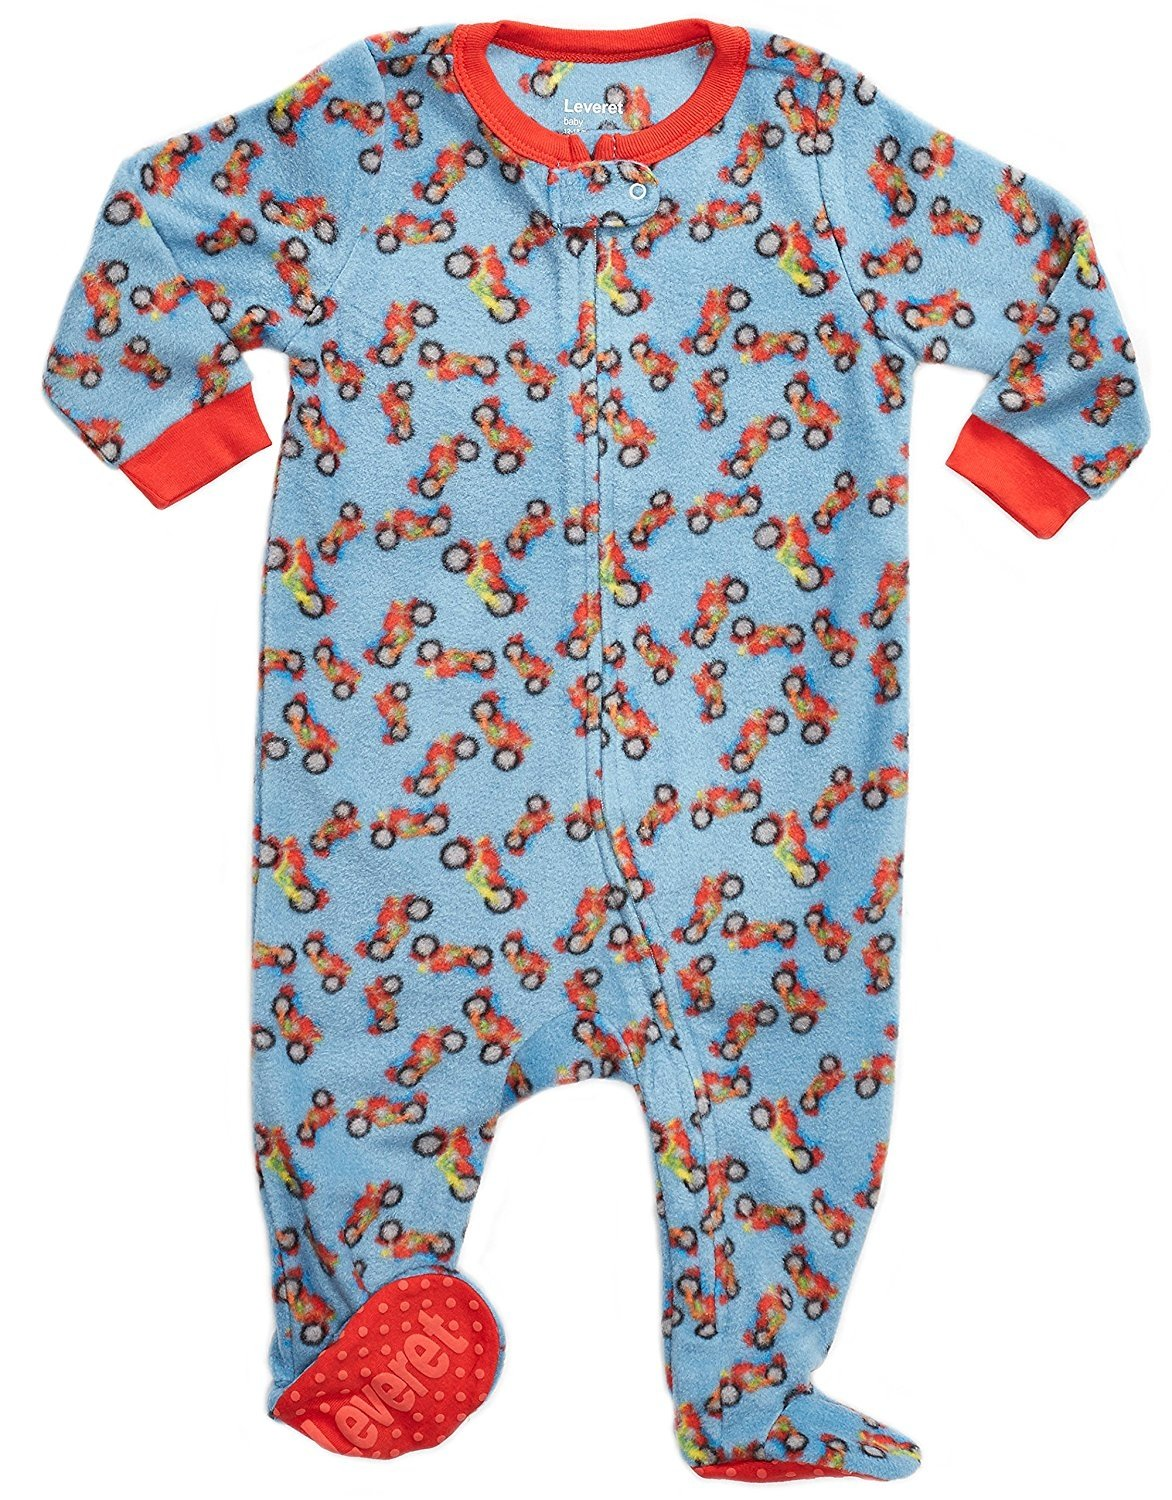 Leveret Fleece Footed Pajama Sleeper Motorcycle 12-18 Months